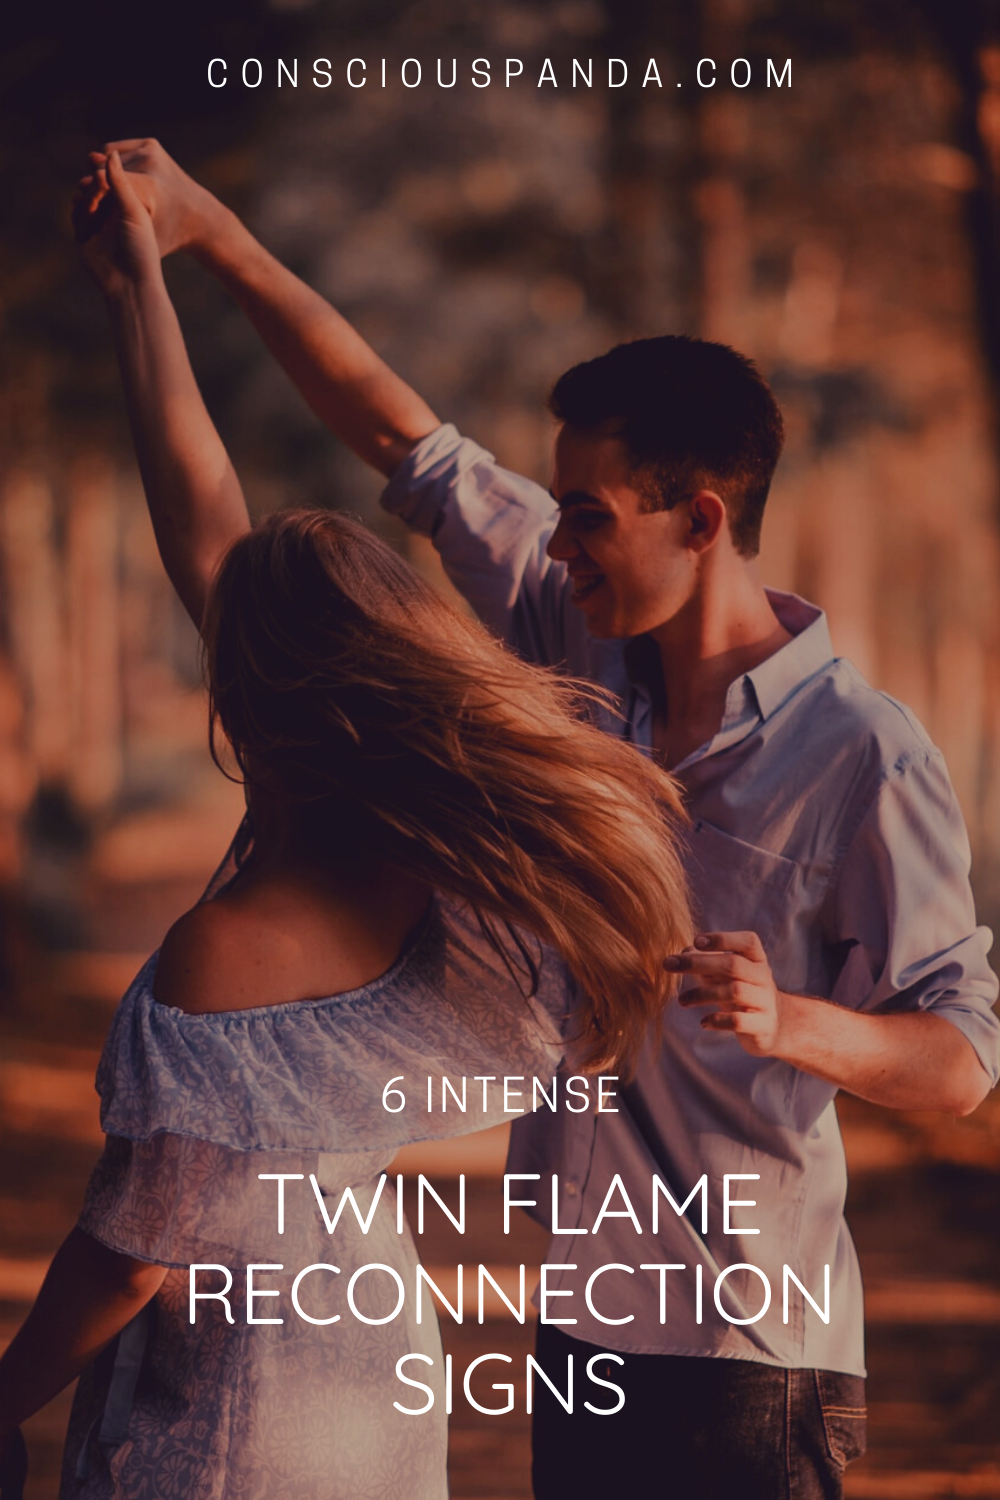 6 Intense Twin Flame Reconnection Signs